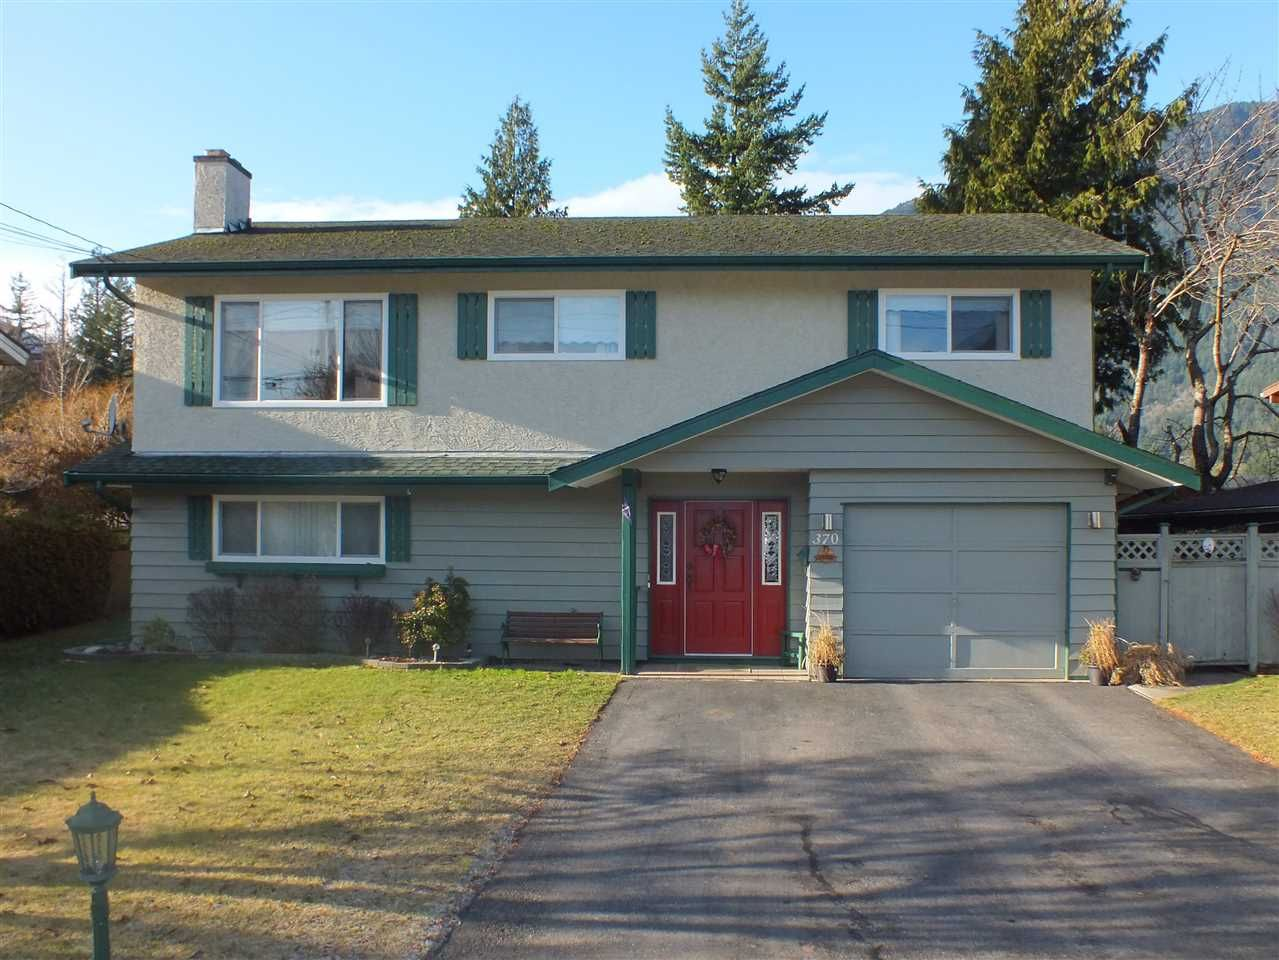 Main Photo: 370 3RD Avenue in Hope: Hope Center House for sale : MLS®# R2424030